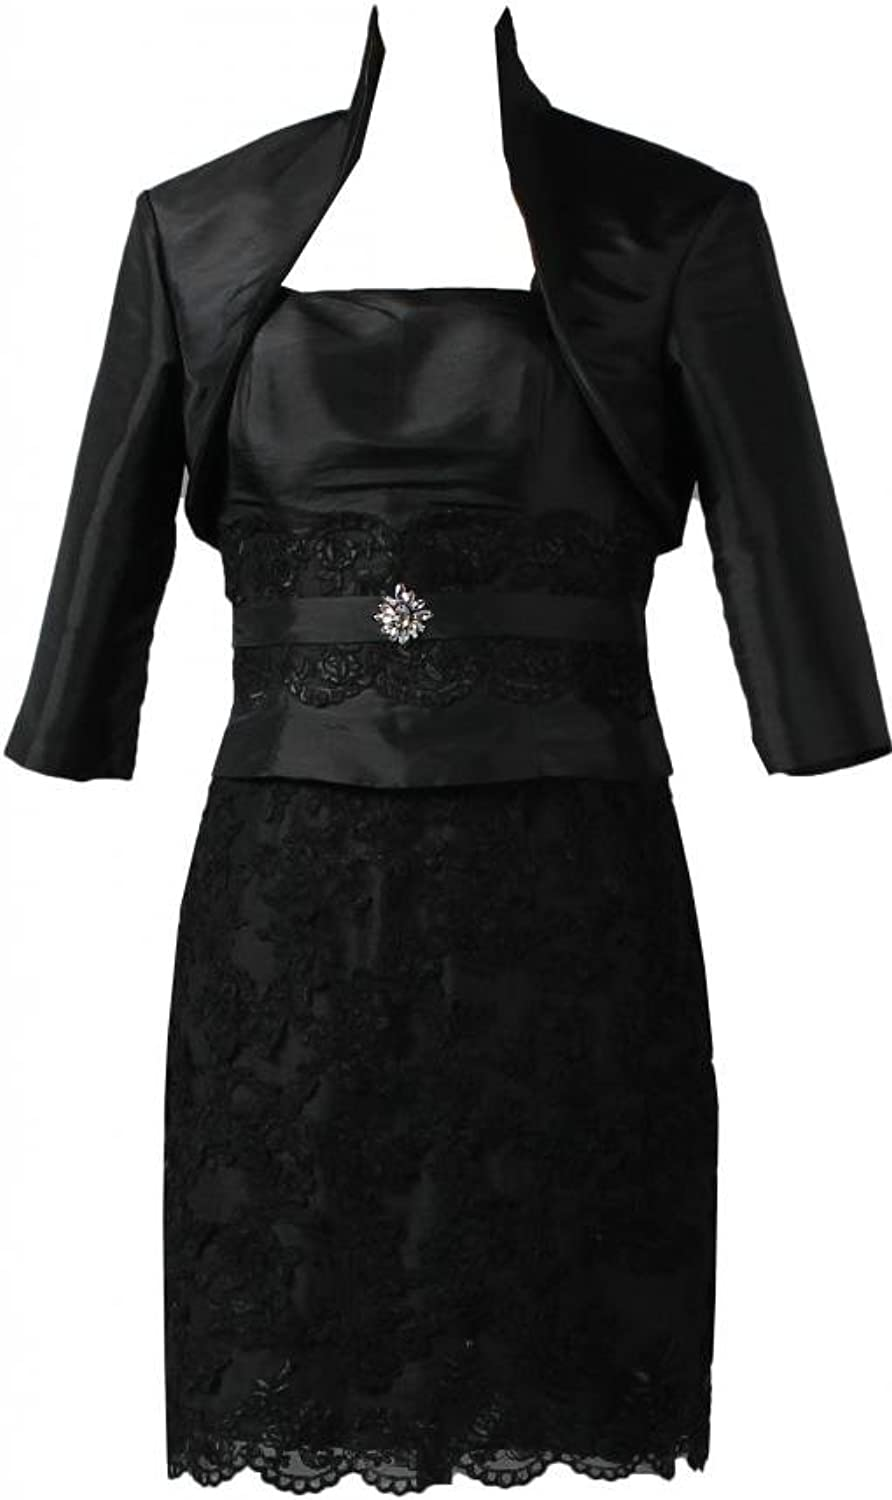 ANTS Women's Short Mother of The Bride Lace Dress with Jacket